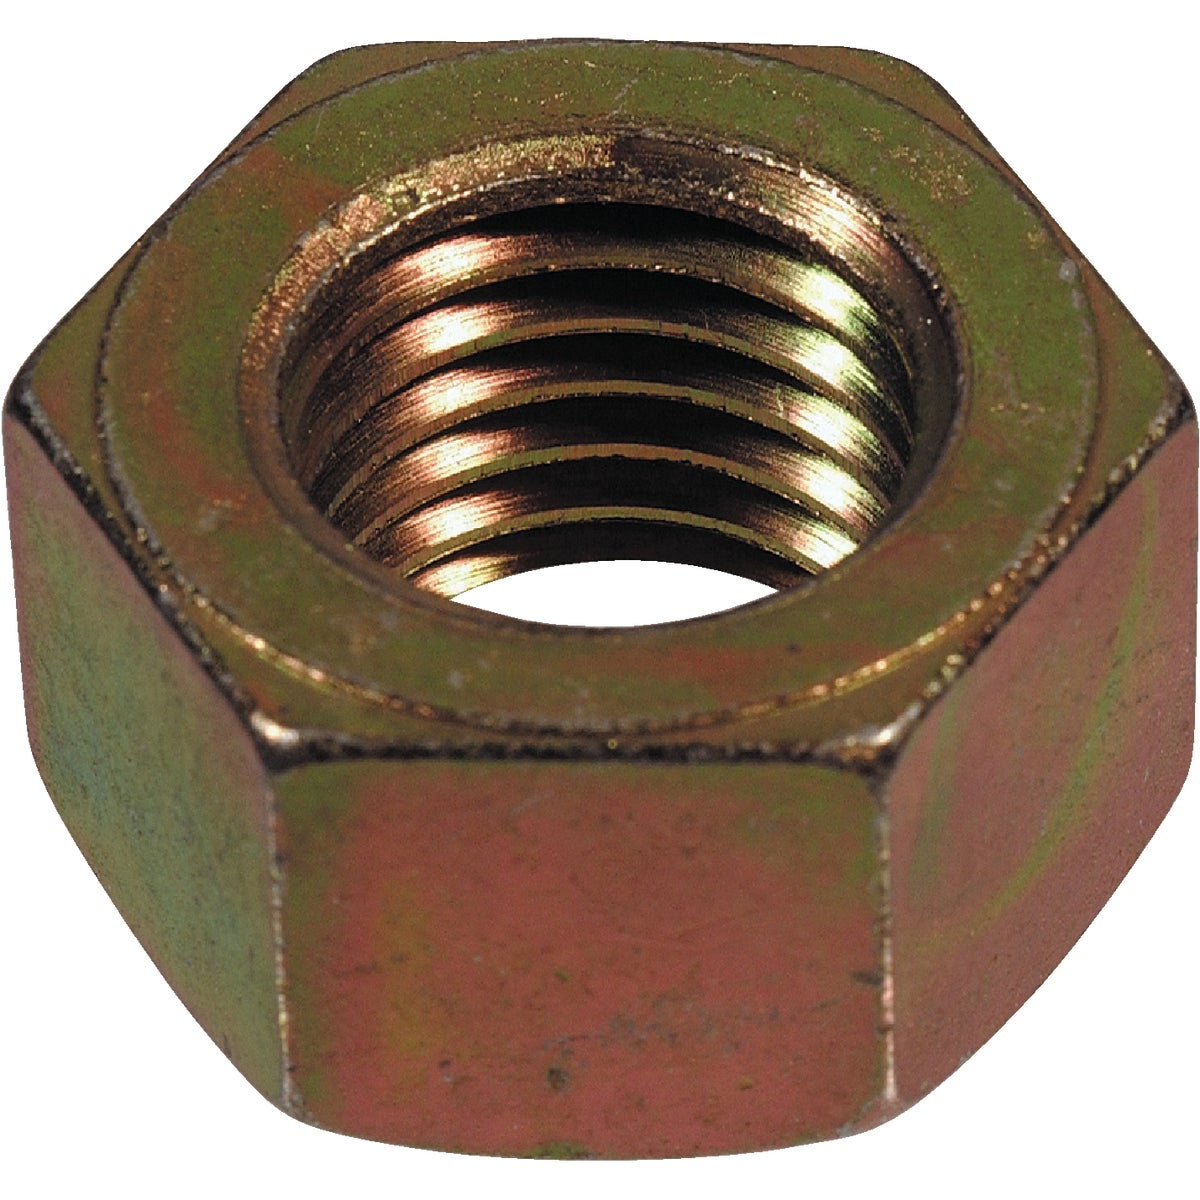 5/8-11 YC G8 HEX NUT - 180415 by Hillman Fastener